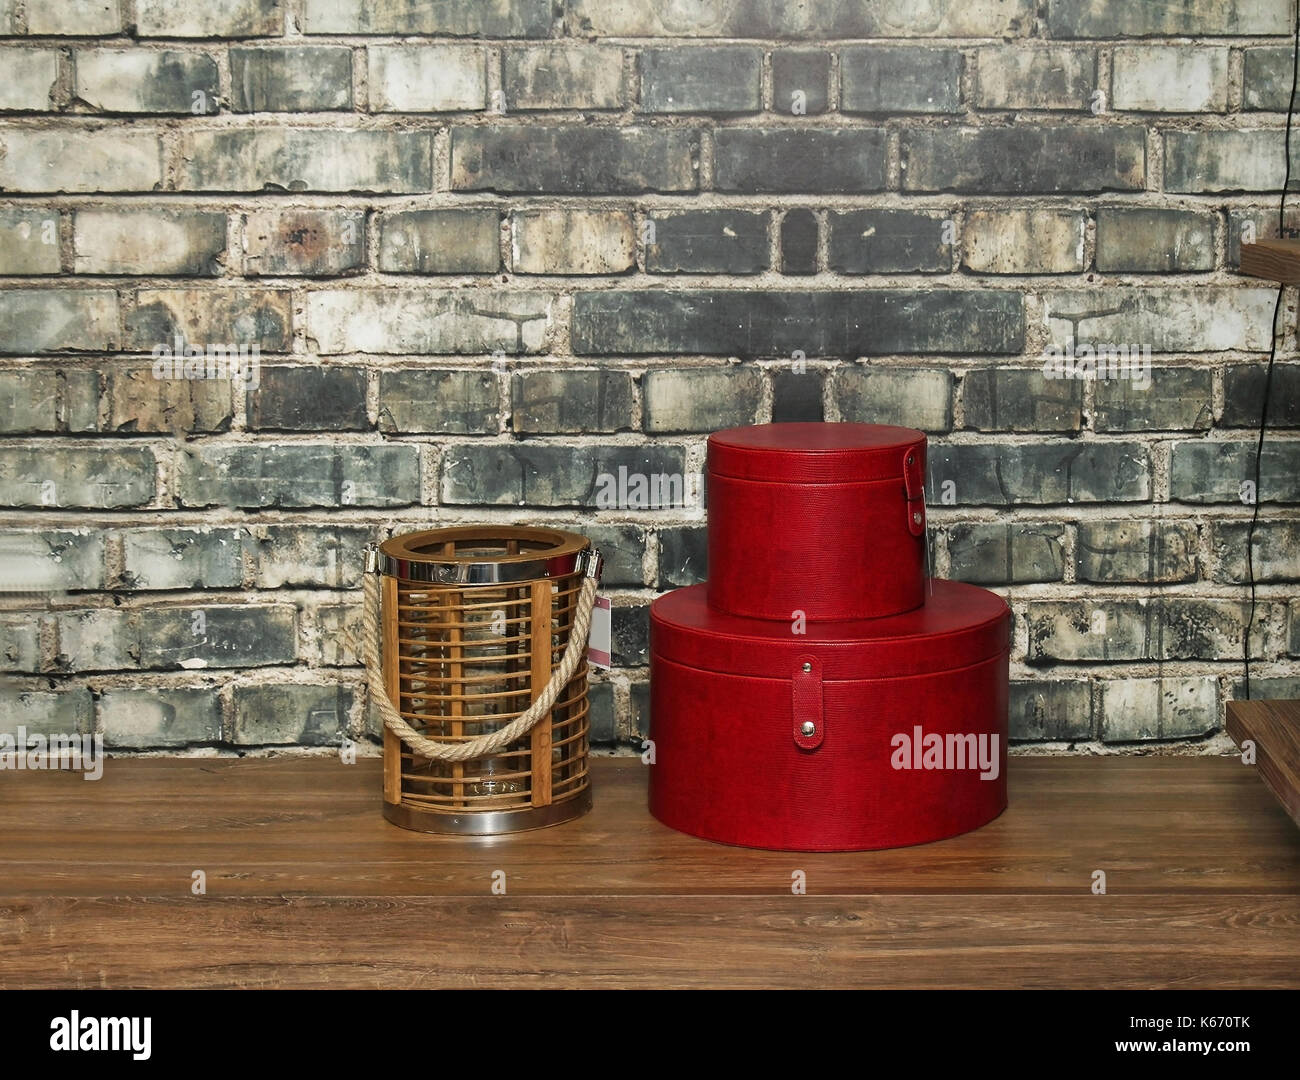 Plain wood table with hipster brick wall background stock photo - Table Decor Inside Retro Interior With Brick Wall In Background Stock Image